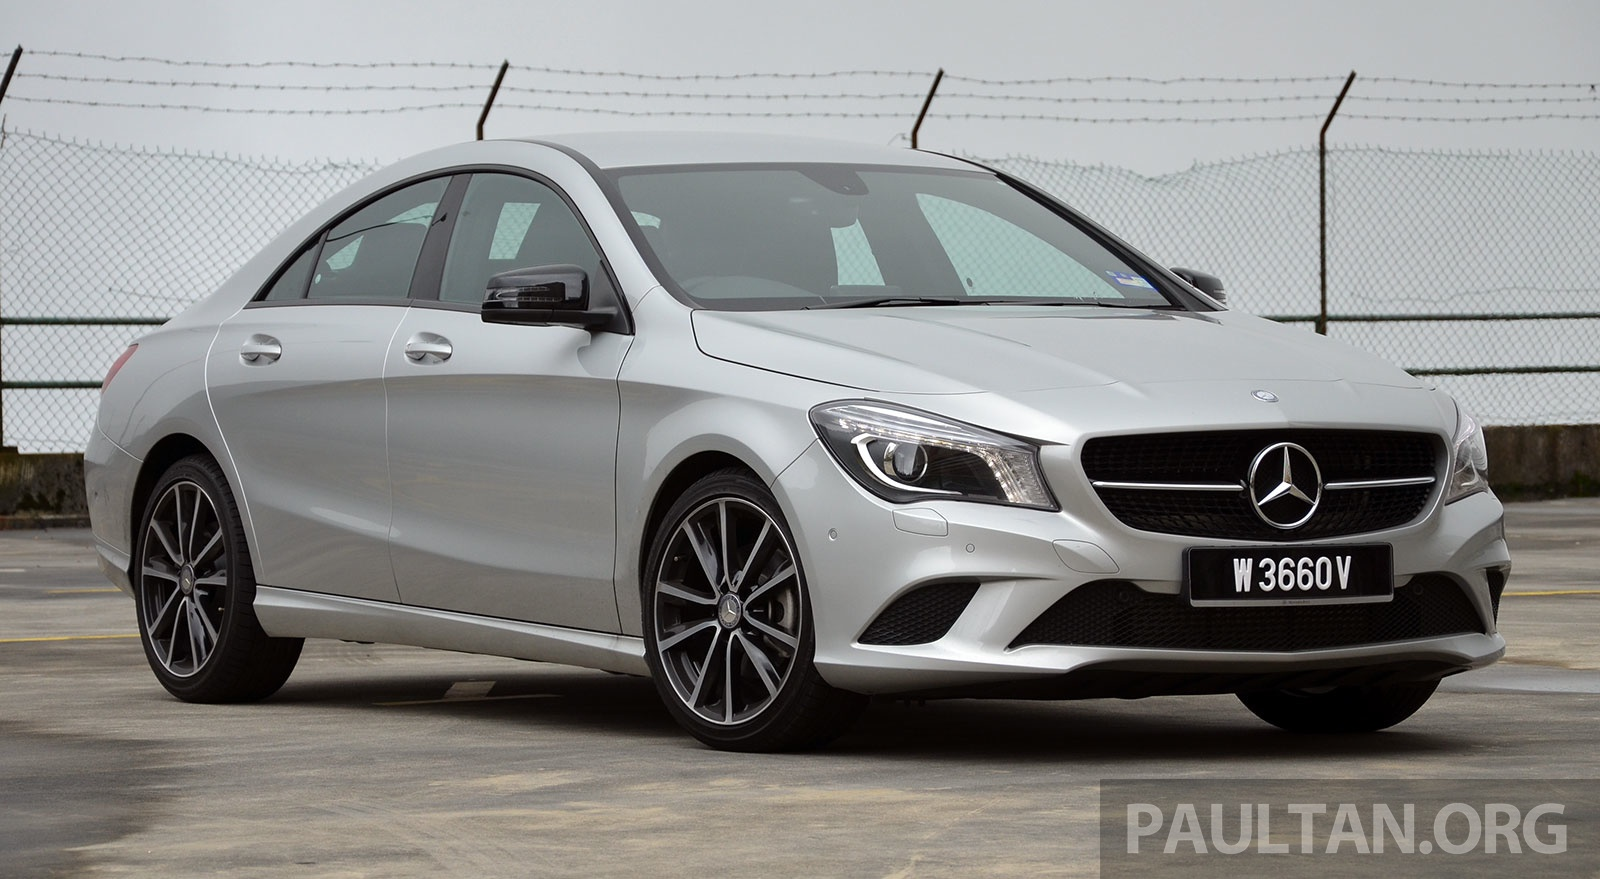 Driven Mercedes Benz Cla 200 Of Flash And Flaws Image